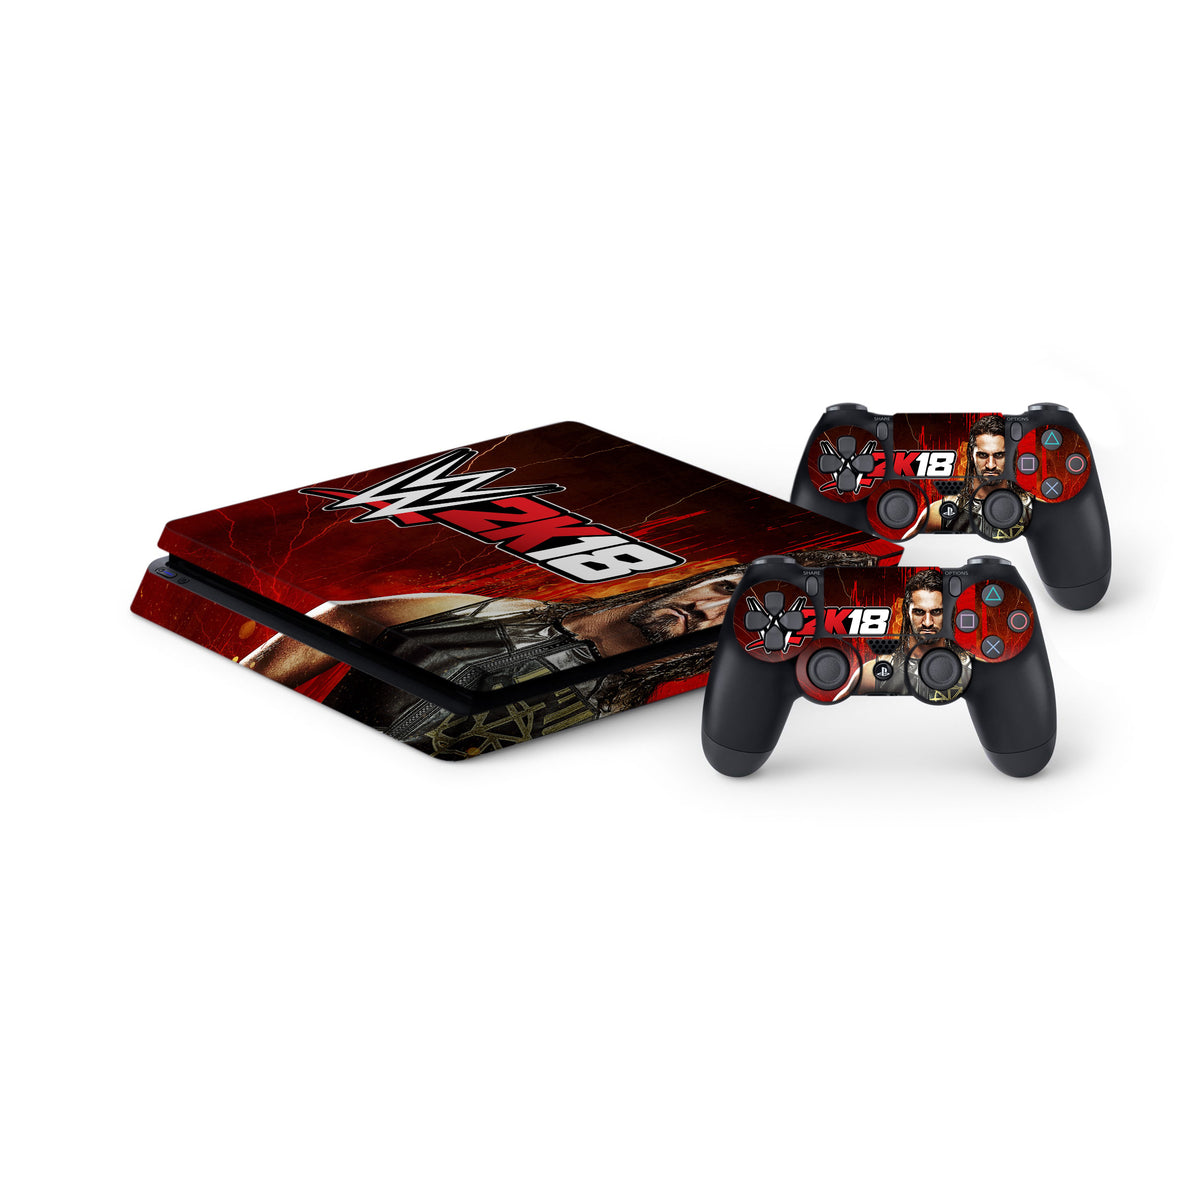 Wwe 2k18 Protective Vinyl Skin Decal Cover For